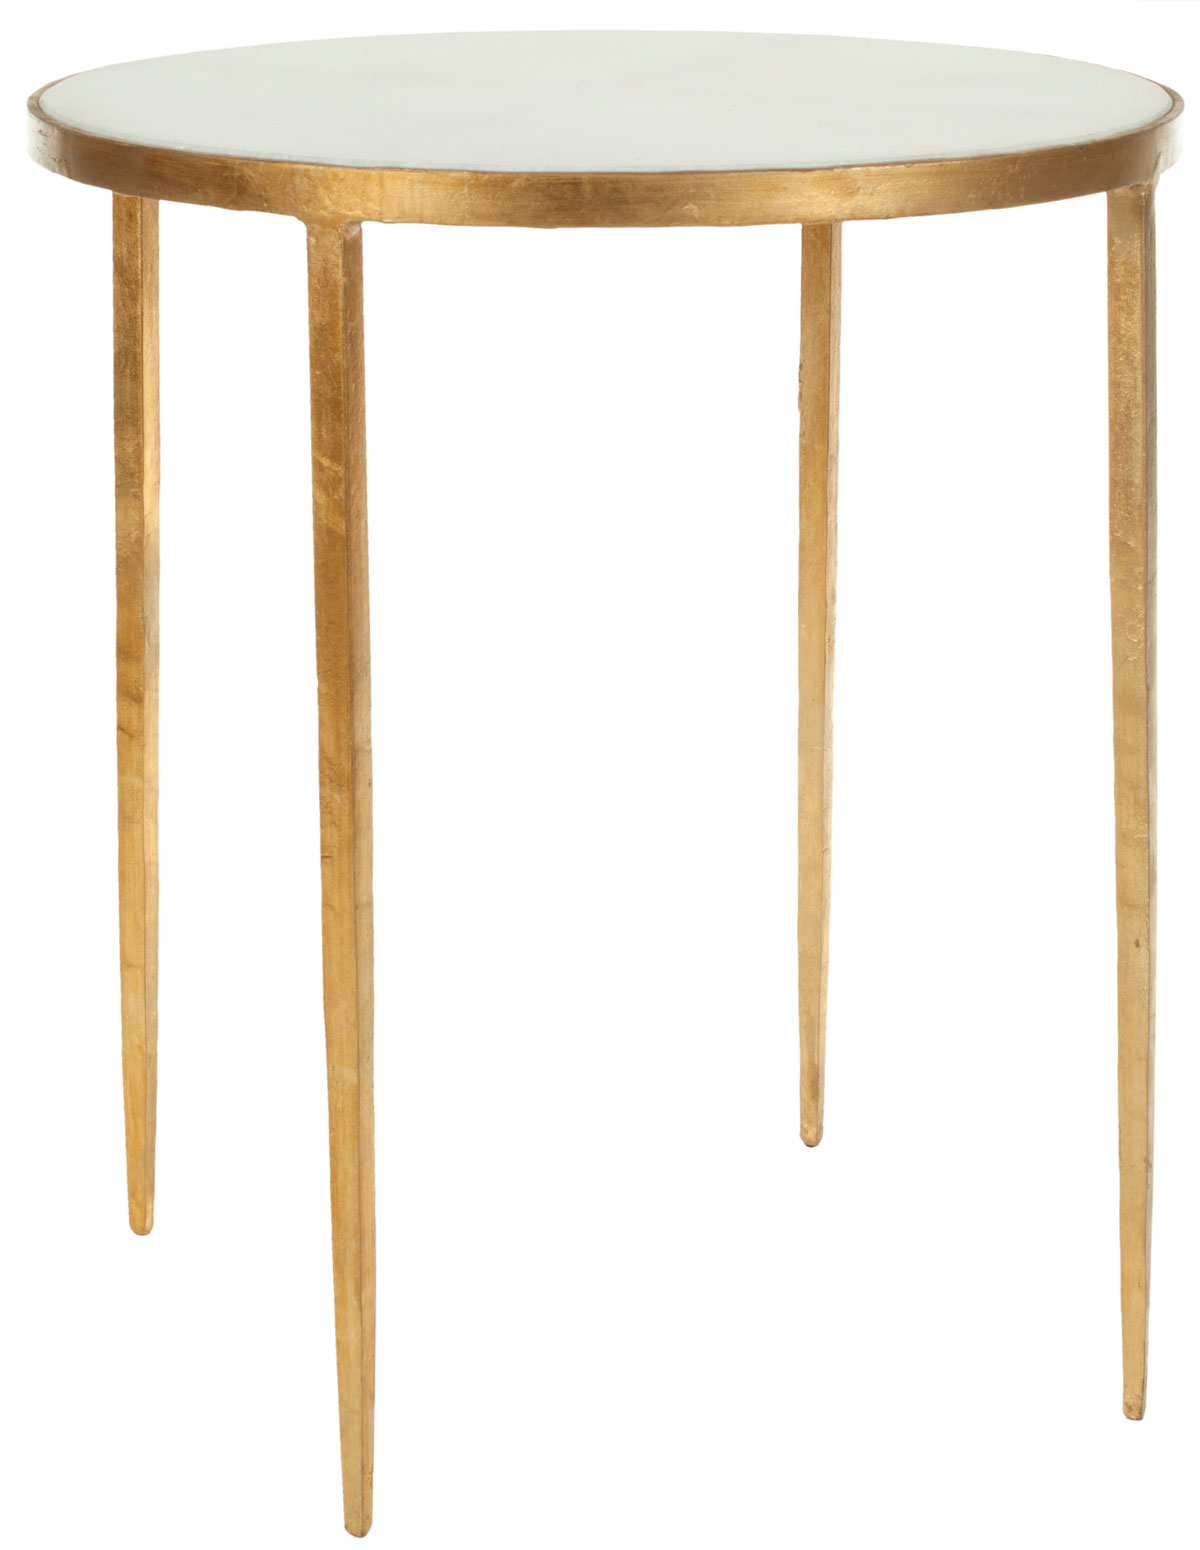 accent tables furniture safavieh front marble top round table share this product nearby occasional and chairs outdoor cooler stand ethan allen country french coffee black glass